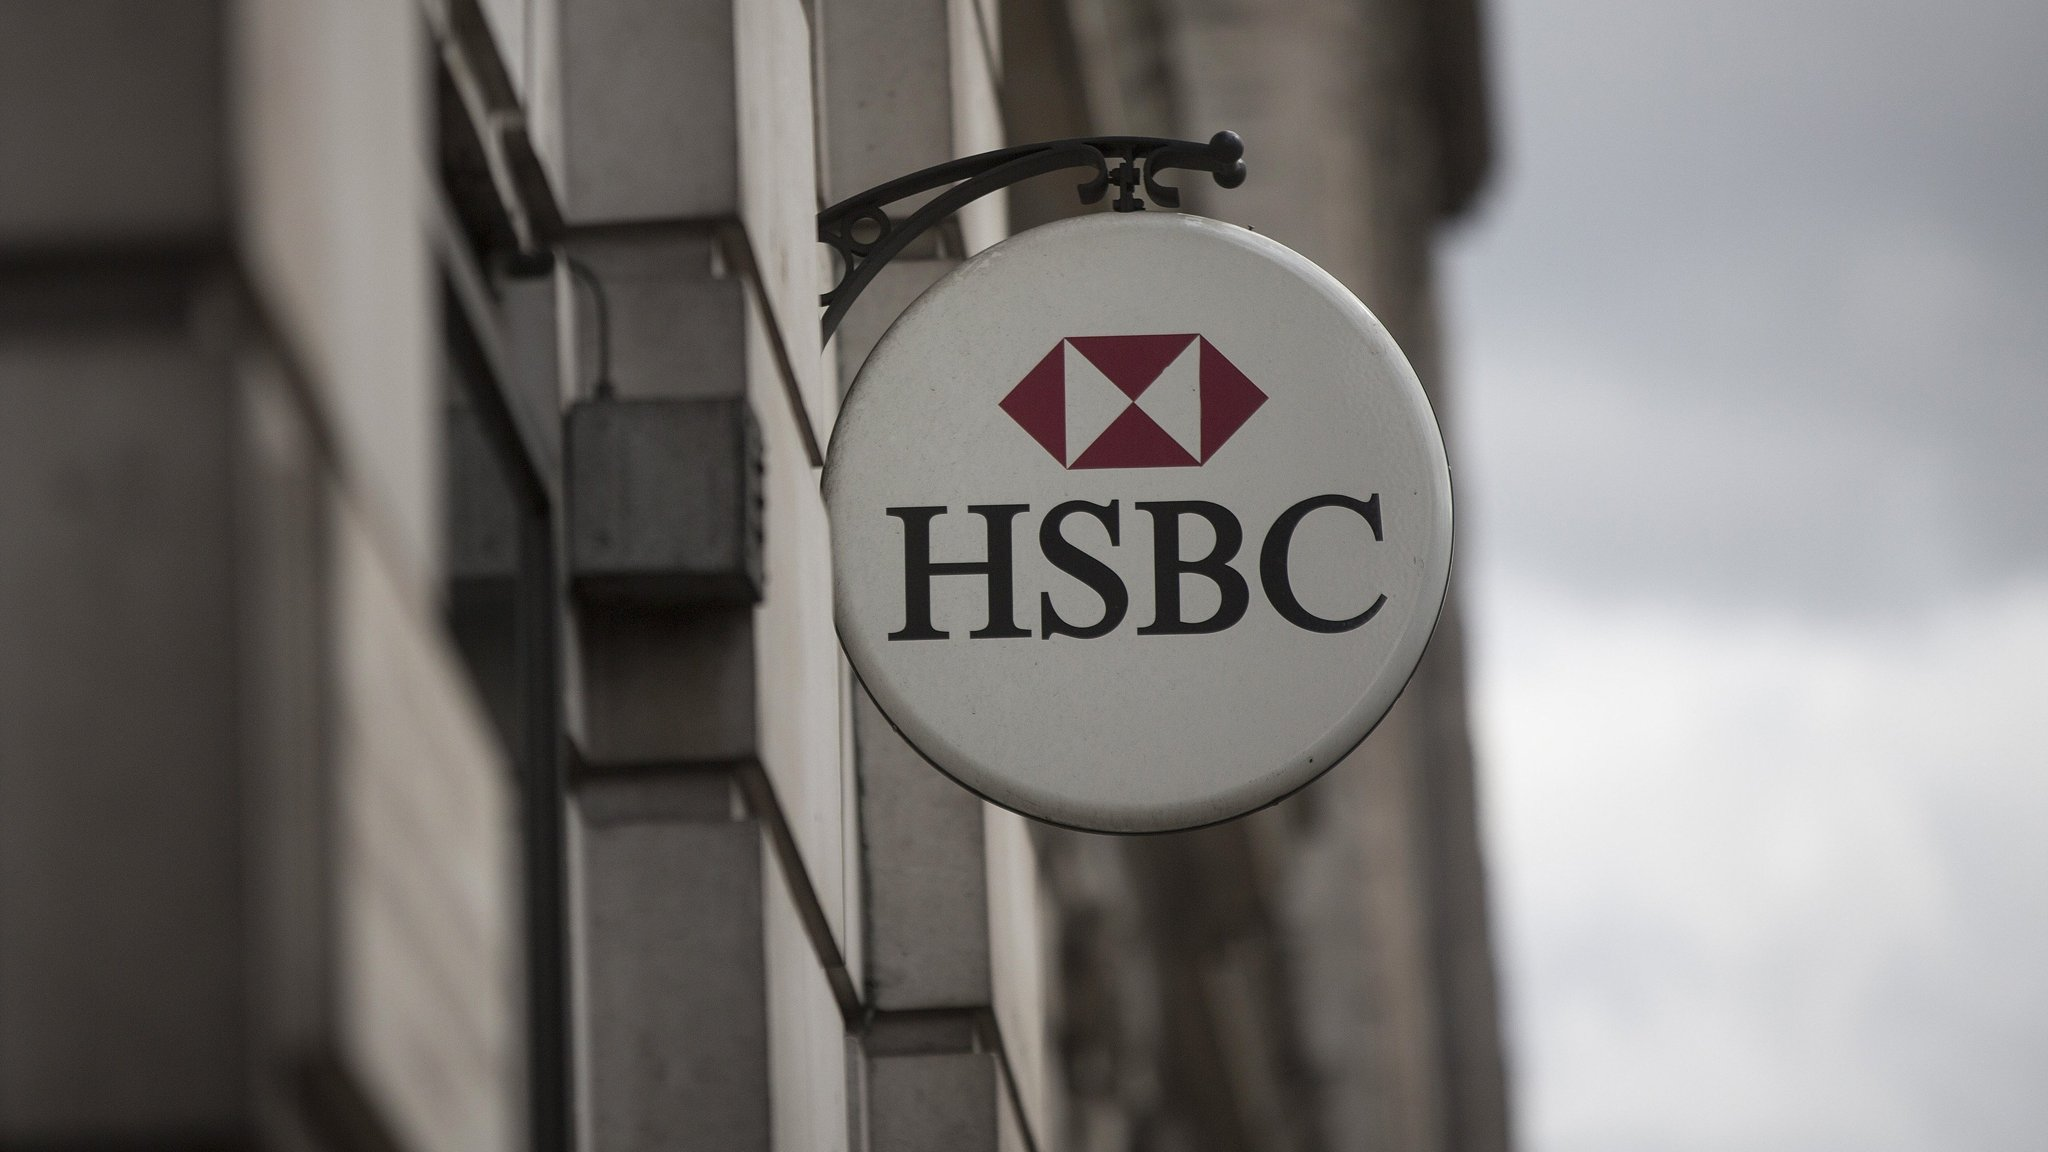 HSBC appoints new heads of Europe and private banking